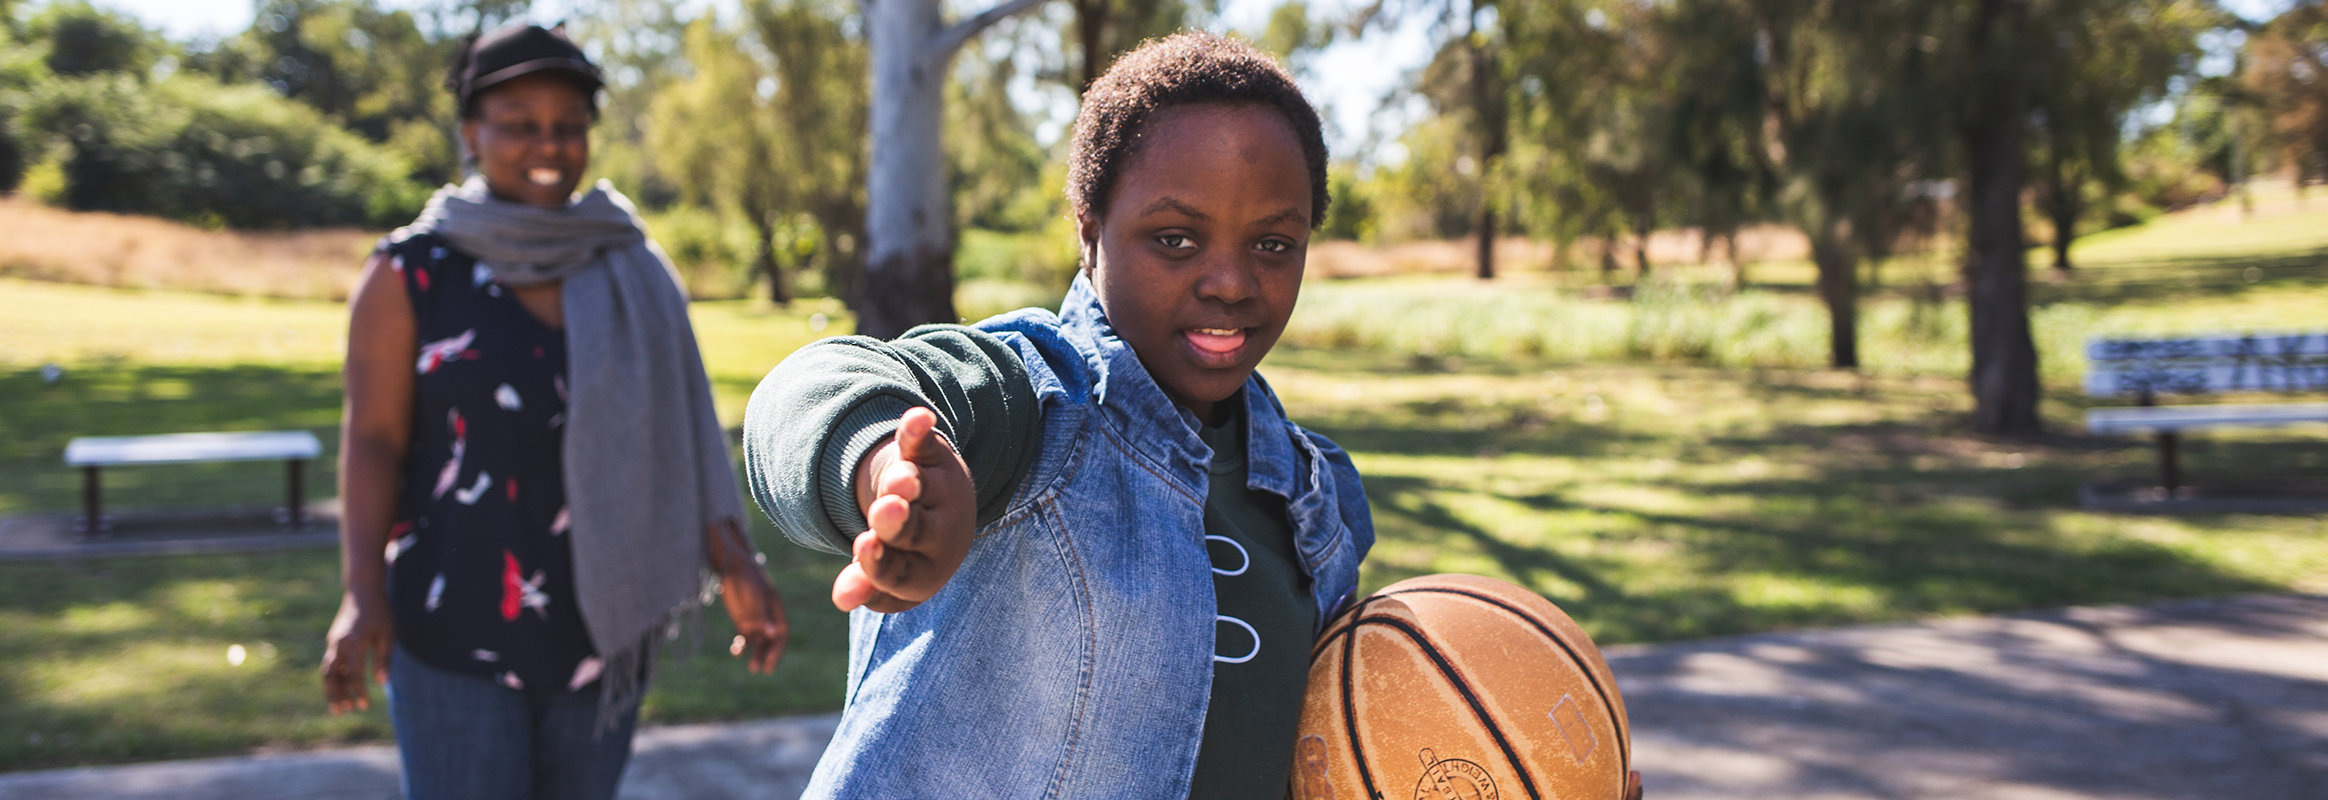 Bonita, a Malawian teenage girl on the basketball court, gesturing to the camera, with another black woman on the court in the background